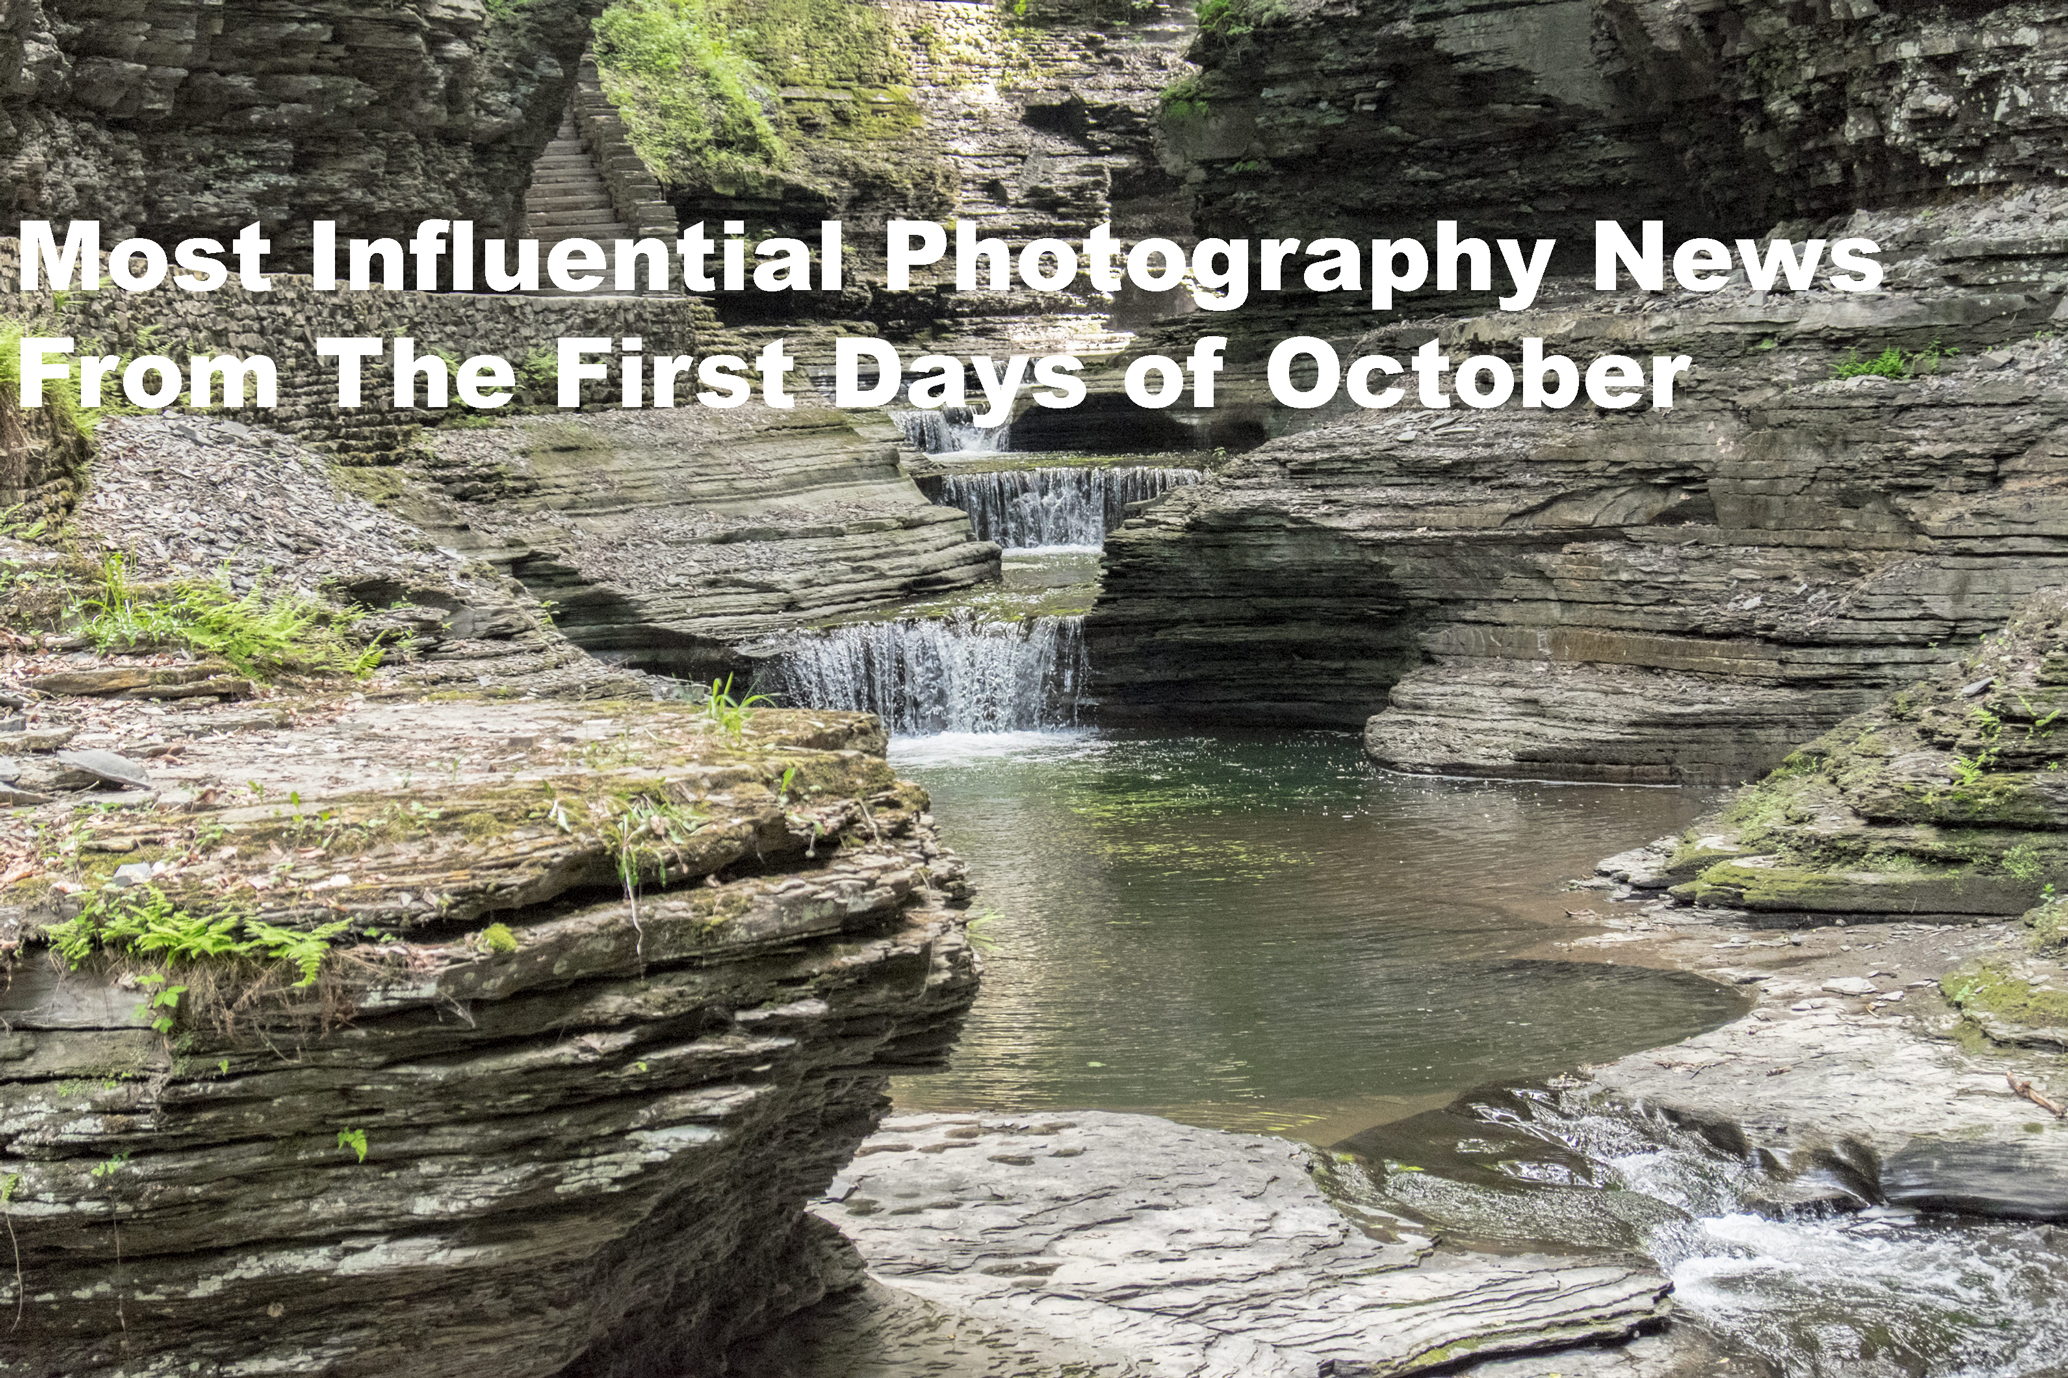 Most Influential Photography News From The First Days of October, watkins glens new york, waterfalls, cascades, Adam Crawford